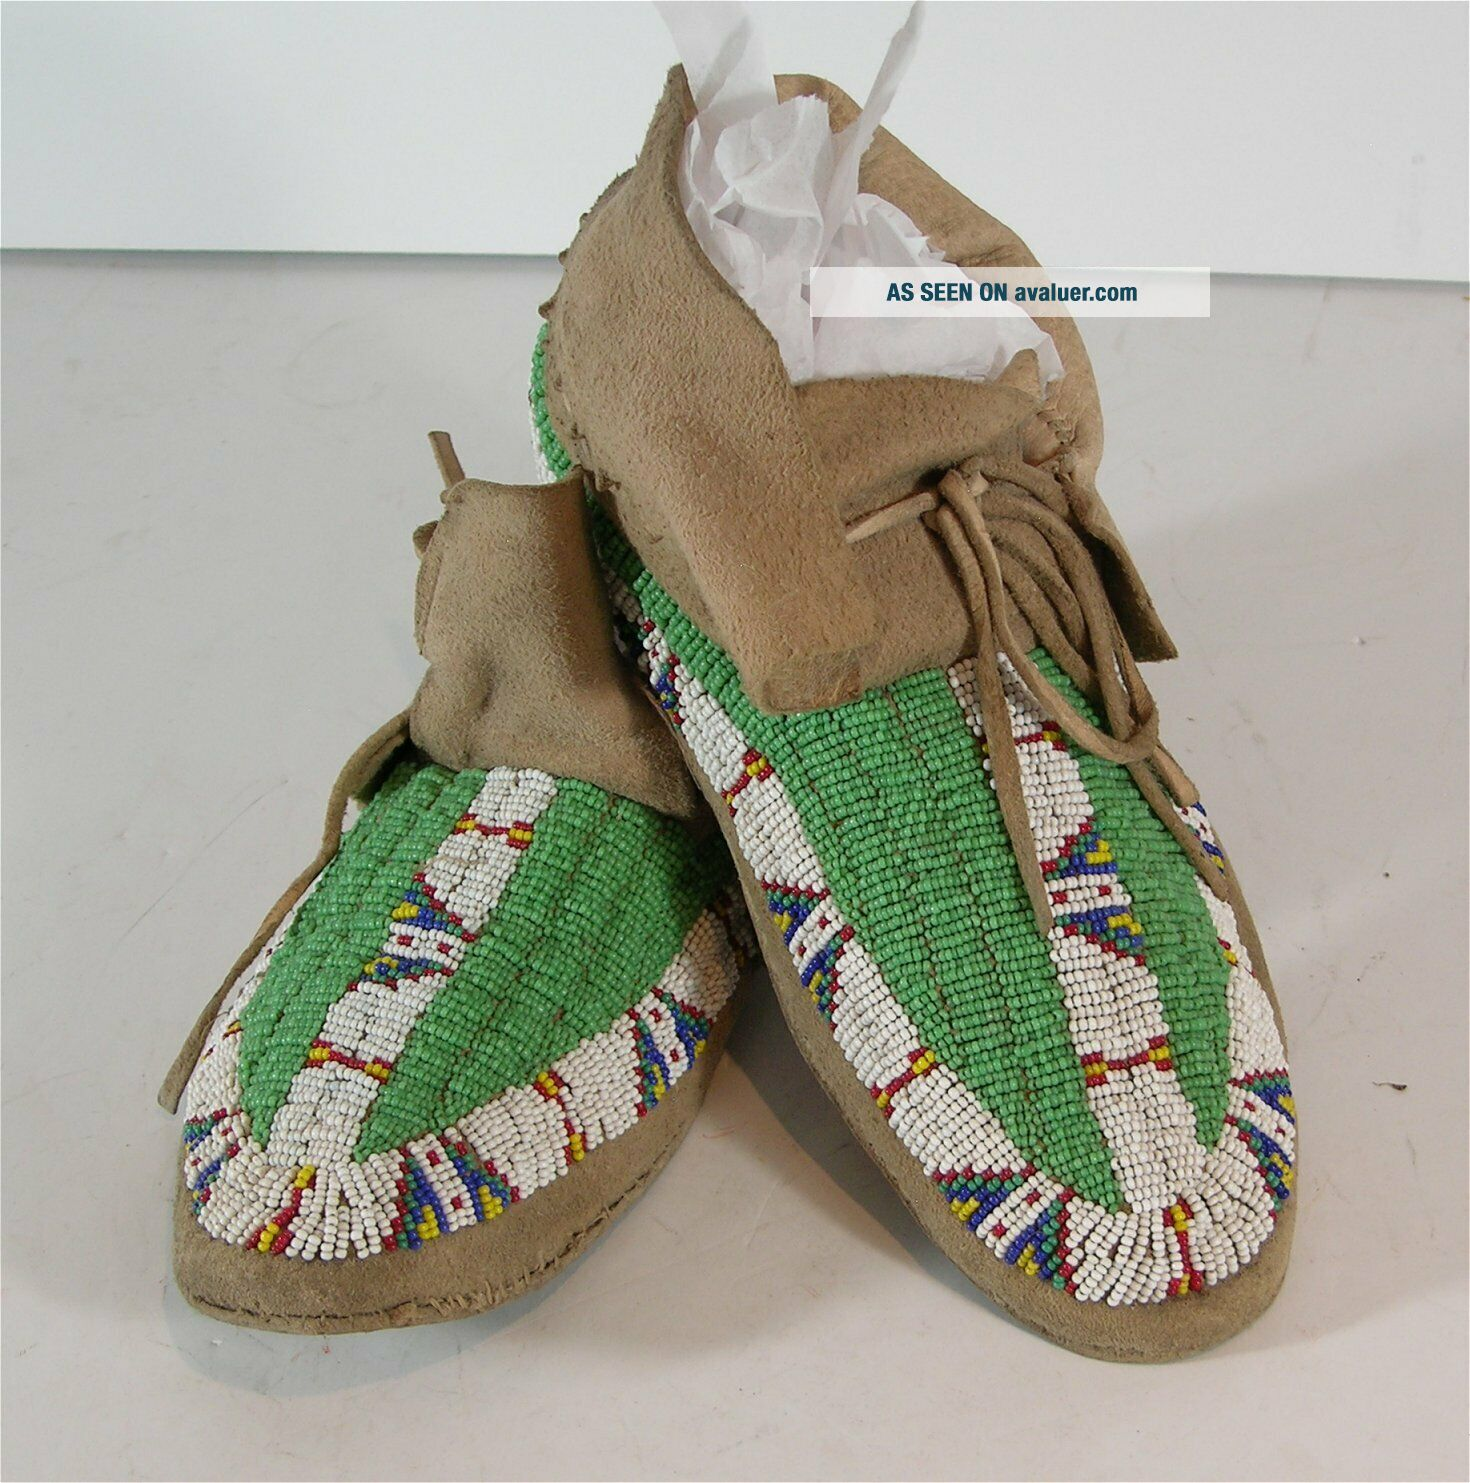 ca1910 PAIR NATIVE AMERICAN SIOUX INDIAN BEAD DECORATED HIDE MOCCASINS BEADED